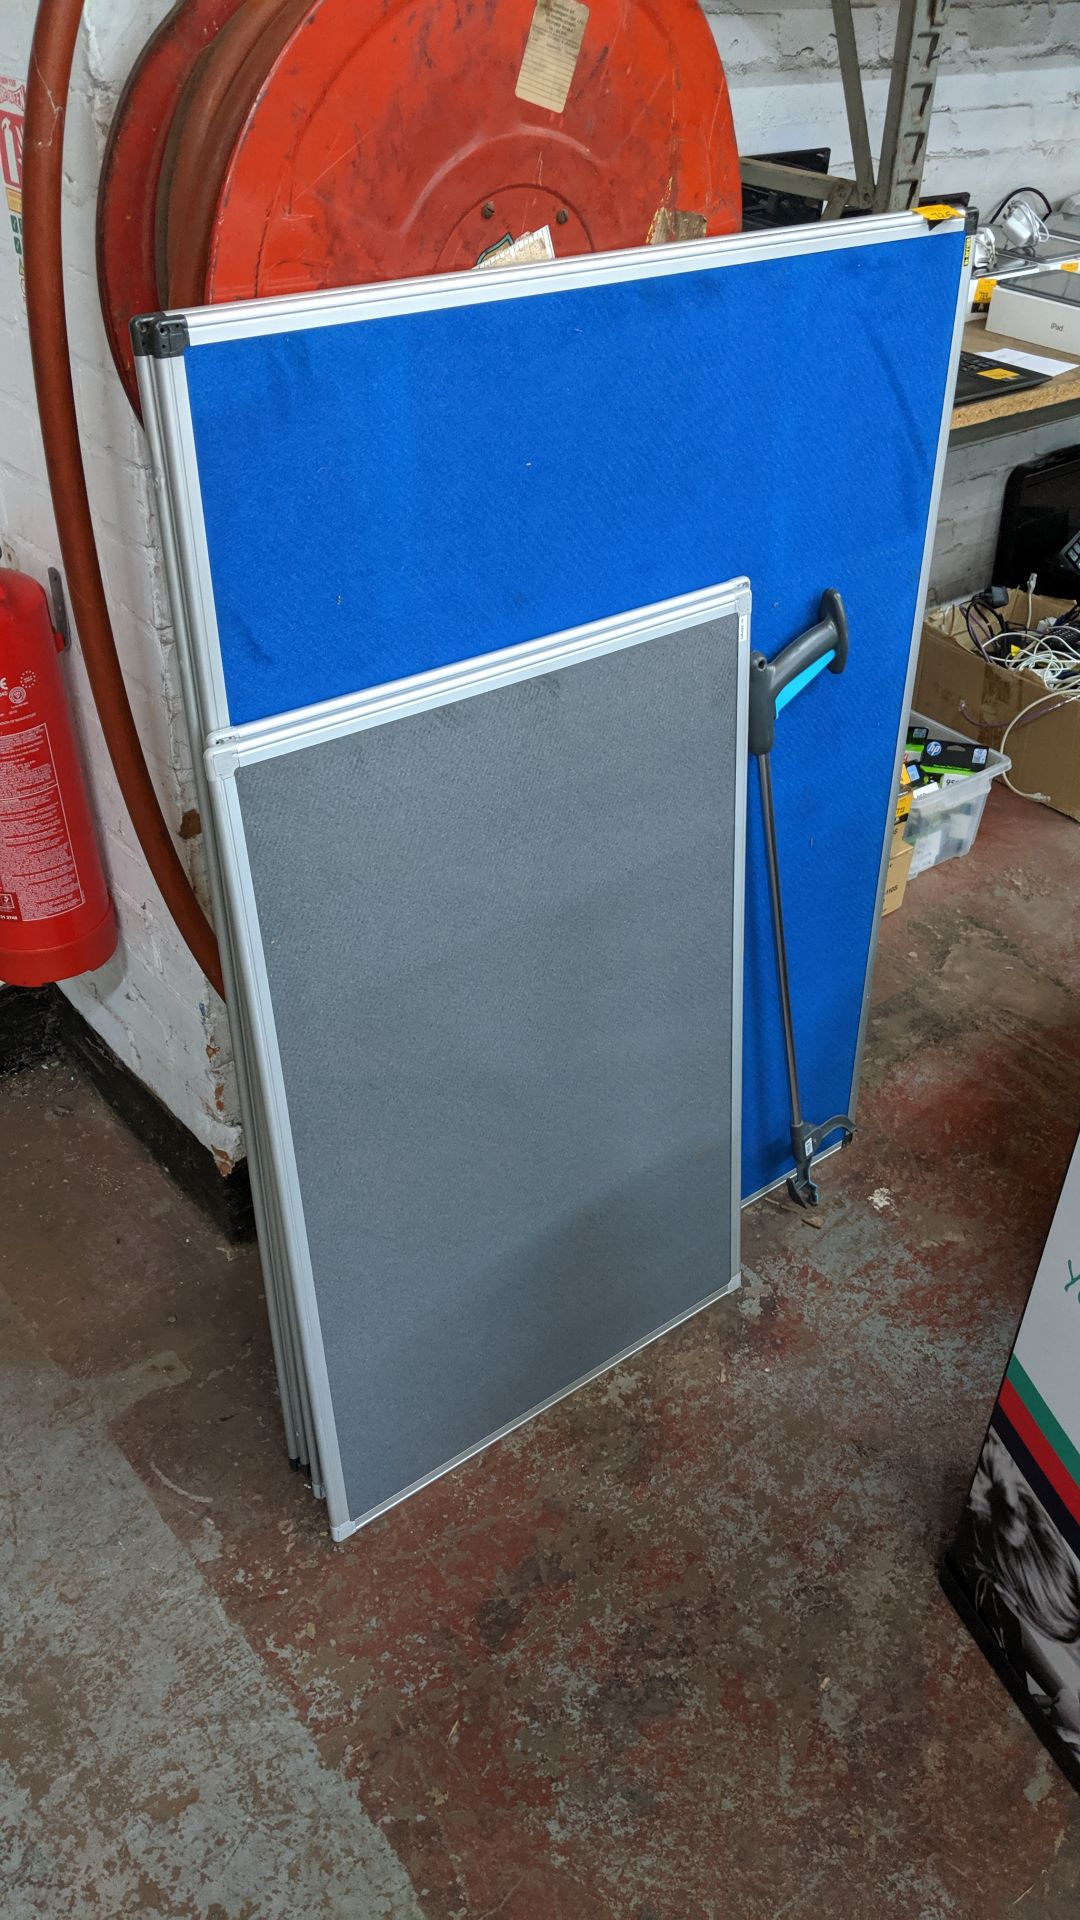 Lot 725 - 4 off assorted pin boards plus rubbish picking handle/grabber. This is one of a large number of lots